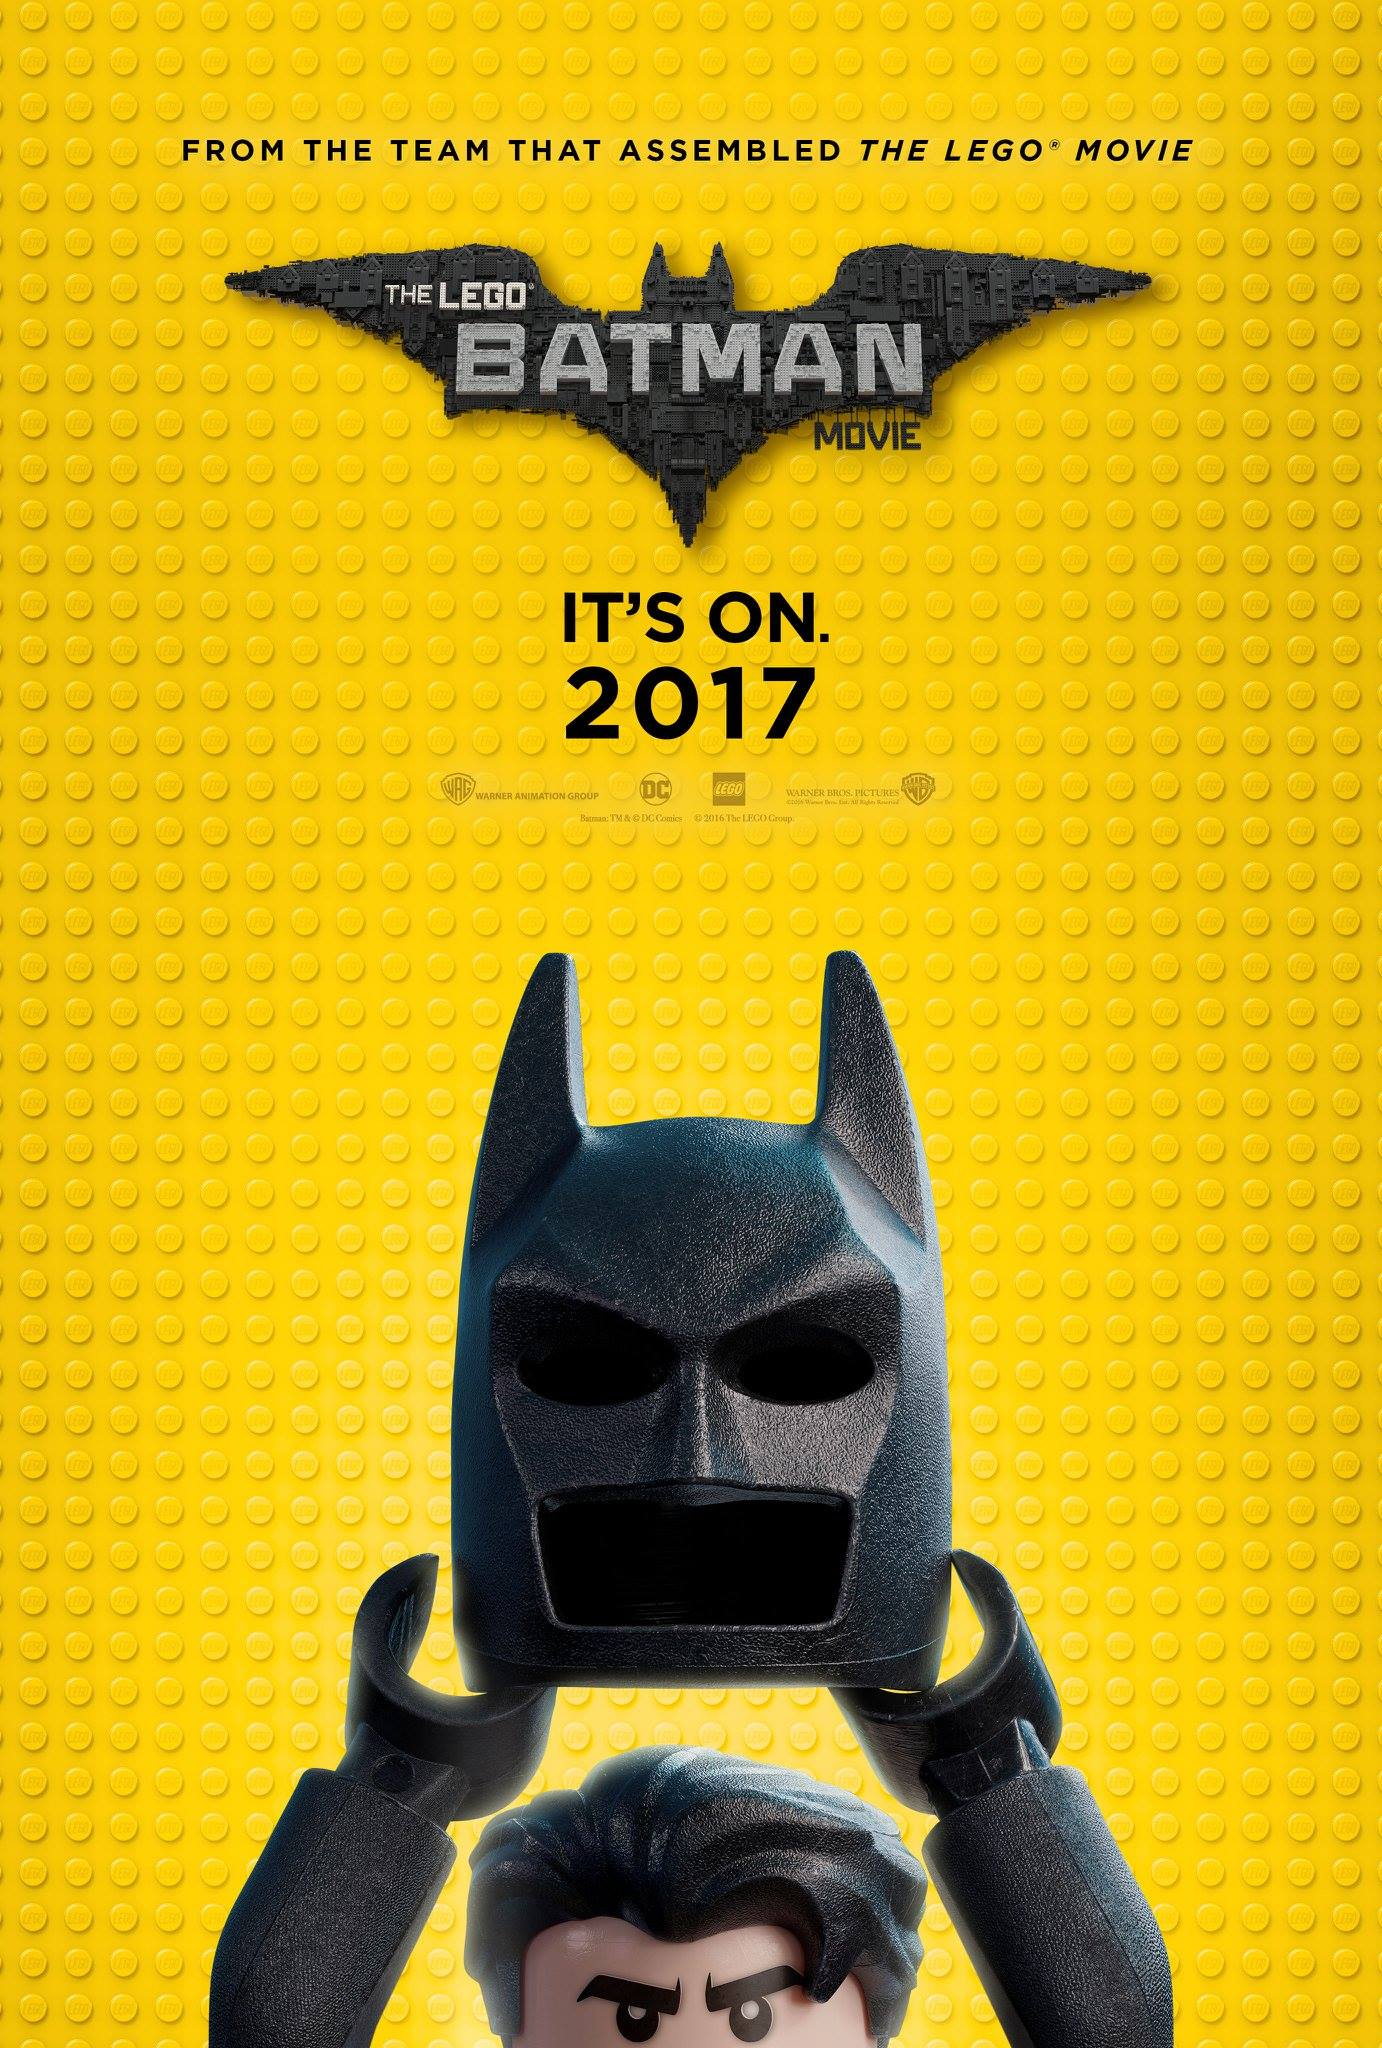 The Caped Crusader Prepares To Swoop Into SDCC With New LEGO Batman Movie Poster